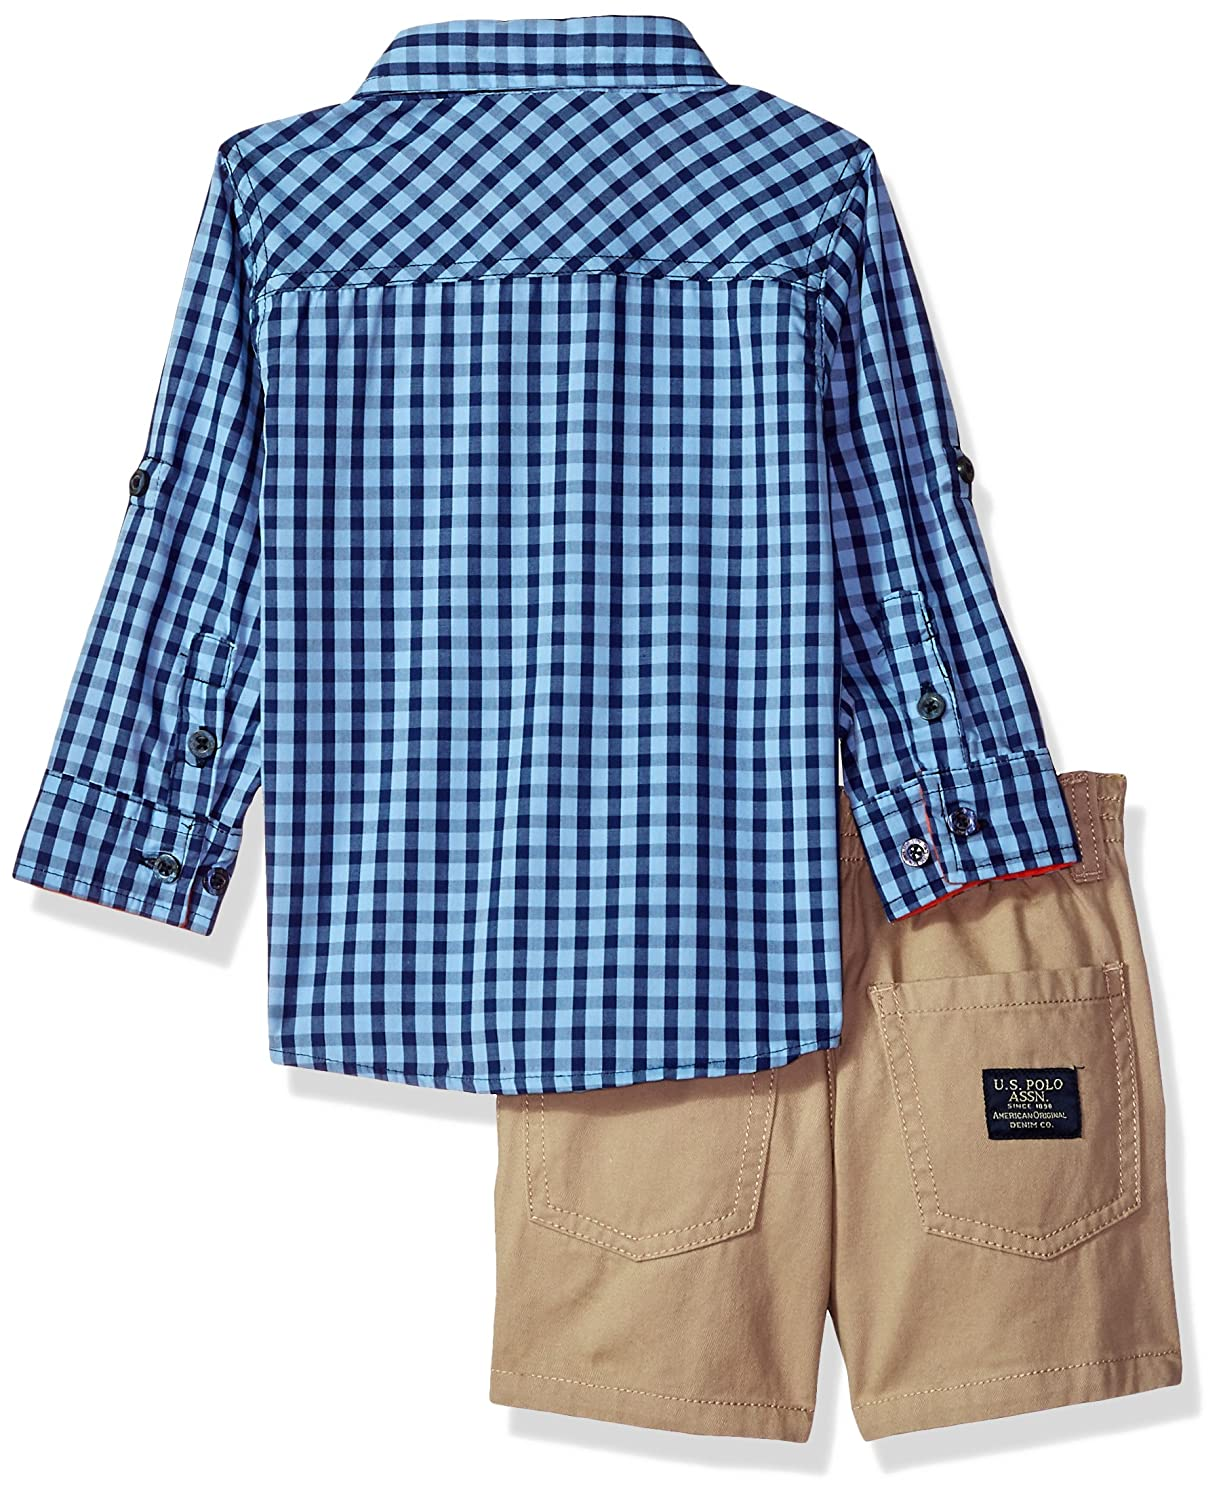 T-Shirt and Short Set Polo Assn U.S Boys Long Sleeve Woven